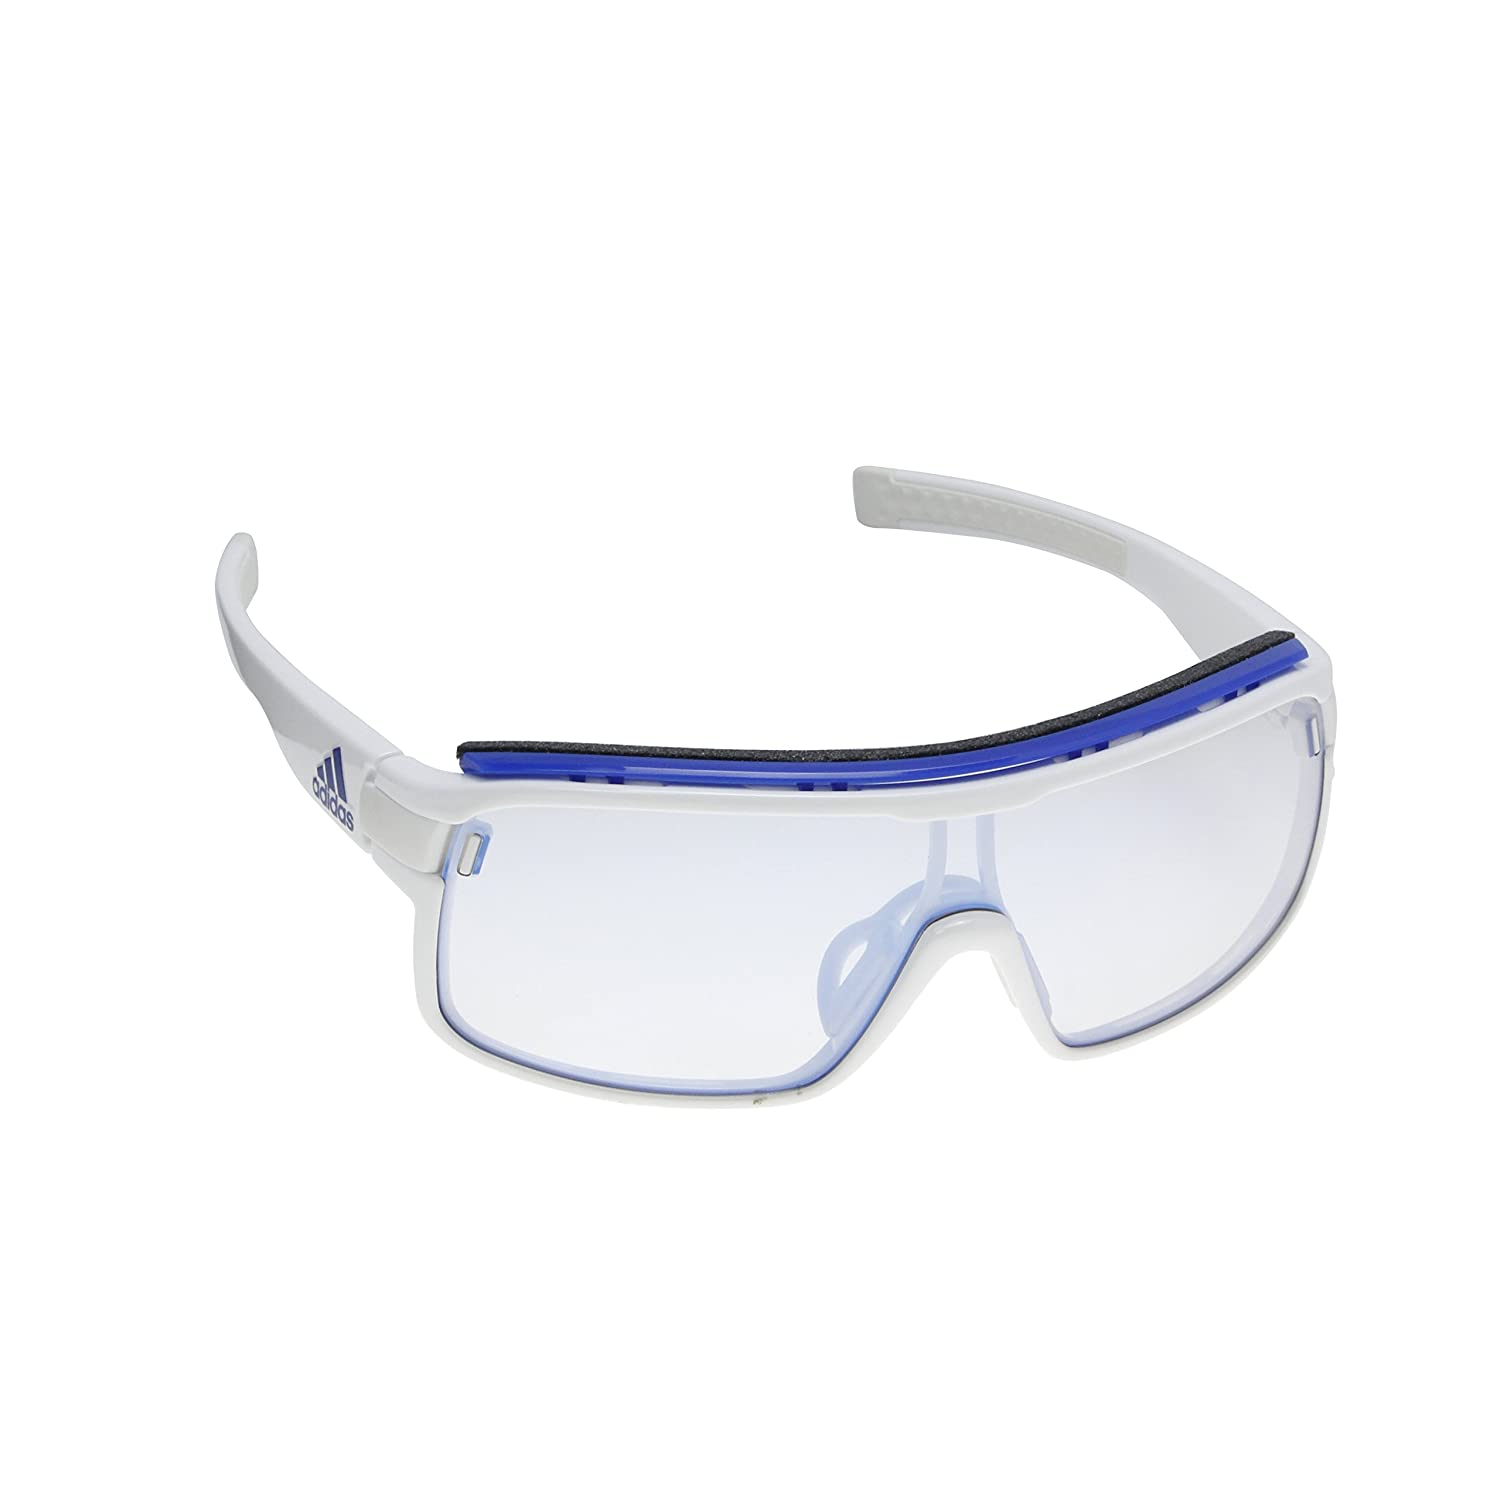 adidas Zonyk Pro L Wrap Sunglasses, White Shiny, 74 mm